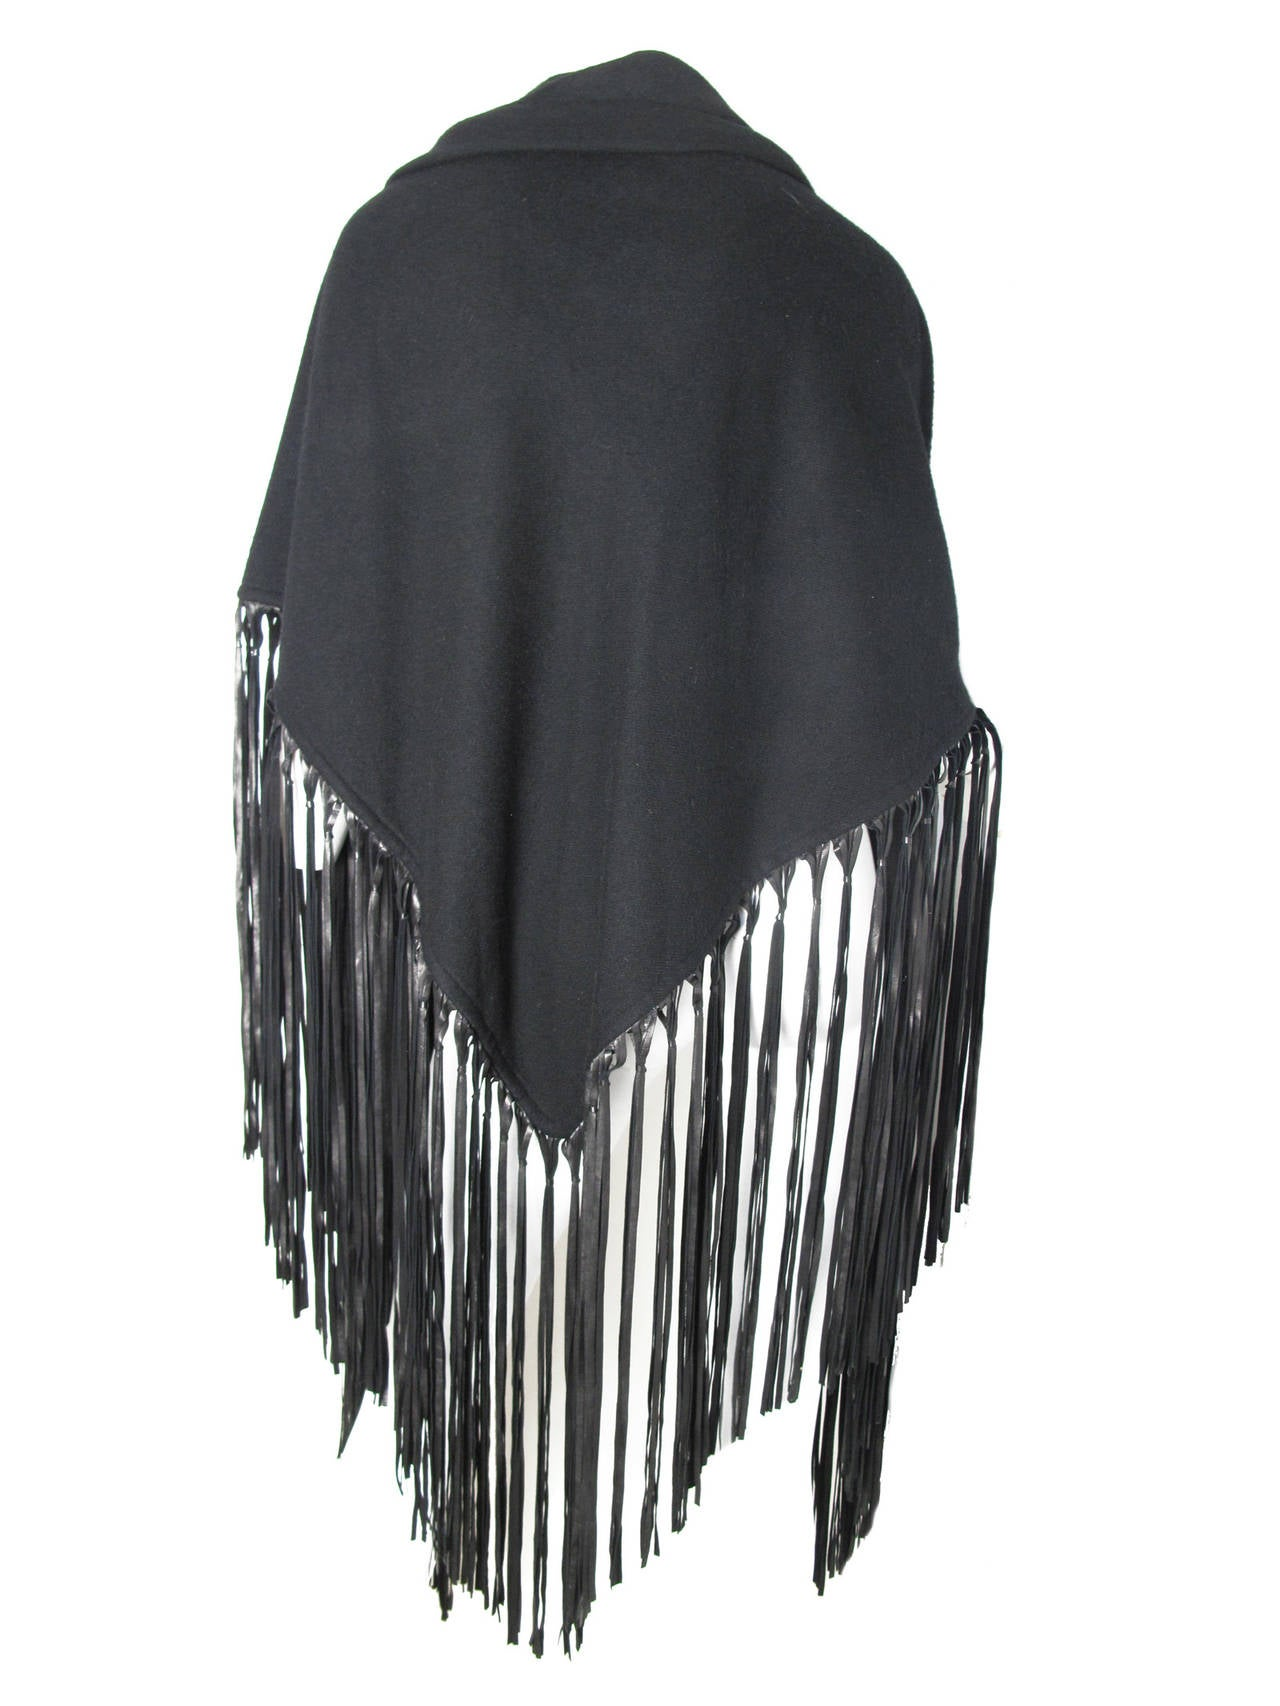 1980s Hermes Black Wool Shawl with Leather Fringe 3